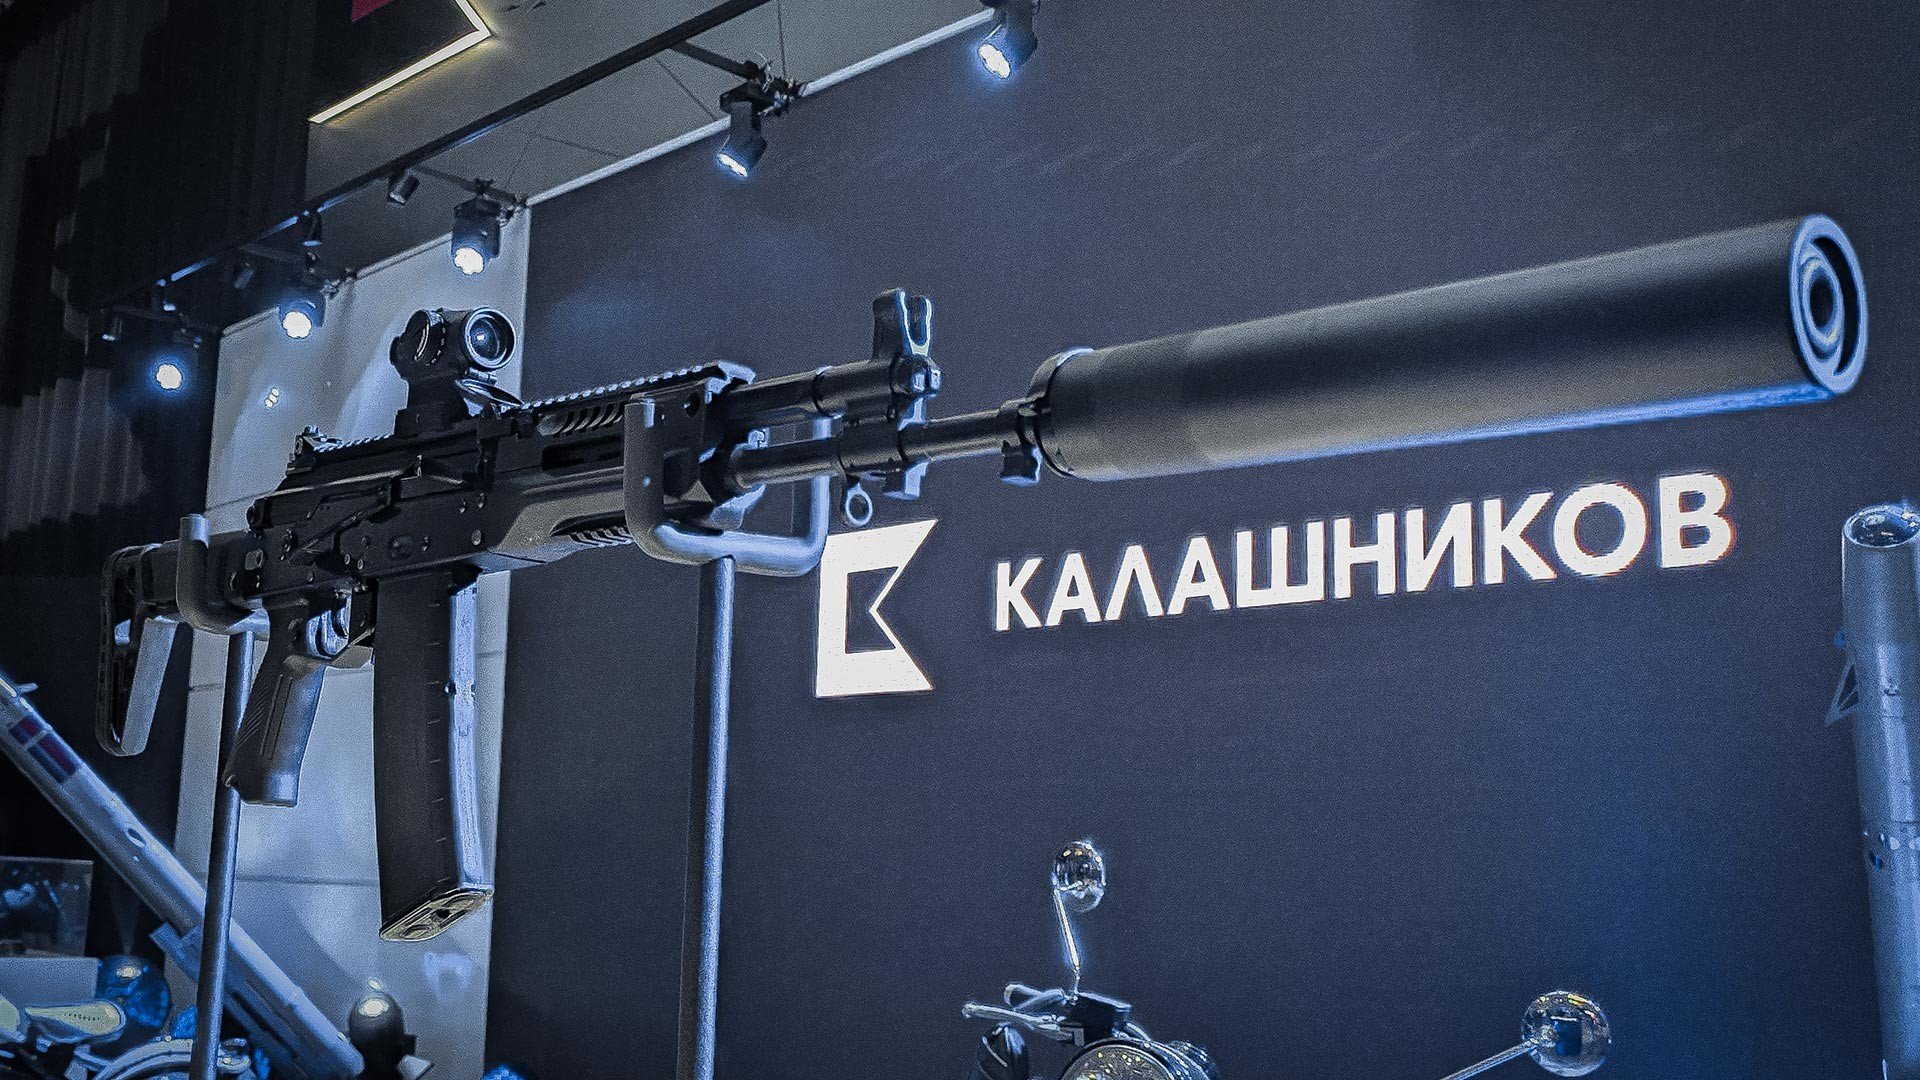 Russia unveils the AK-19 for NATO-armed countries - Russia Beyond